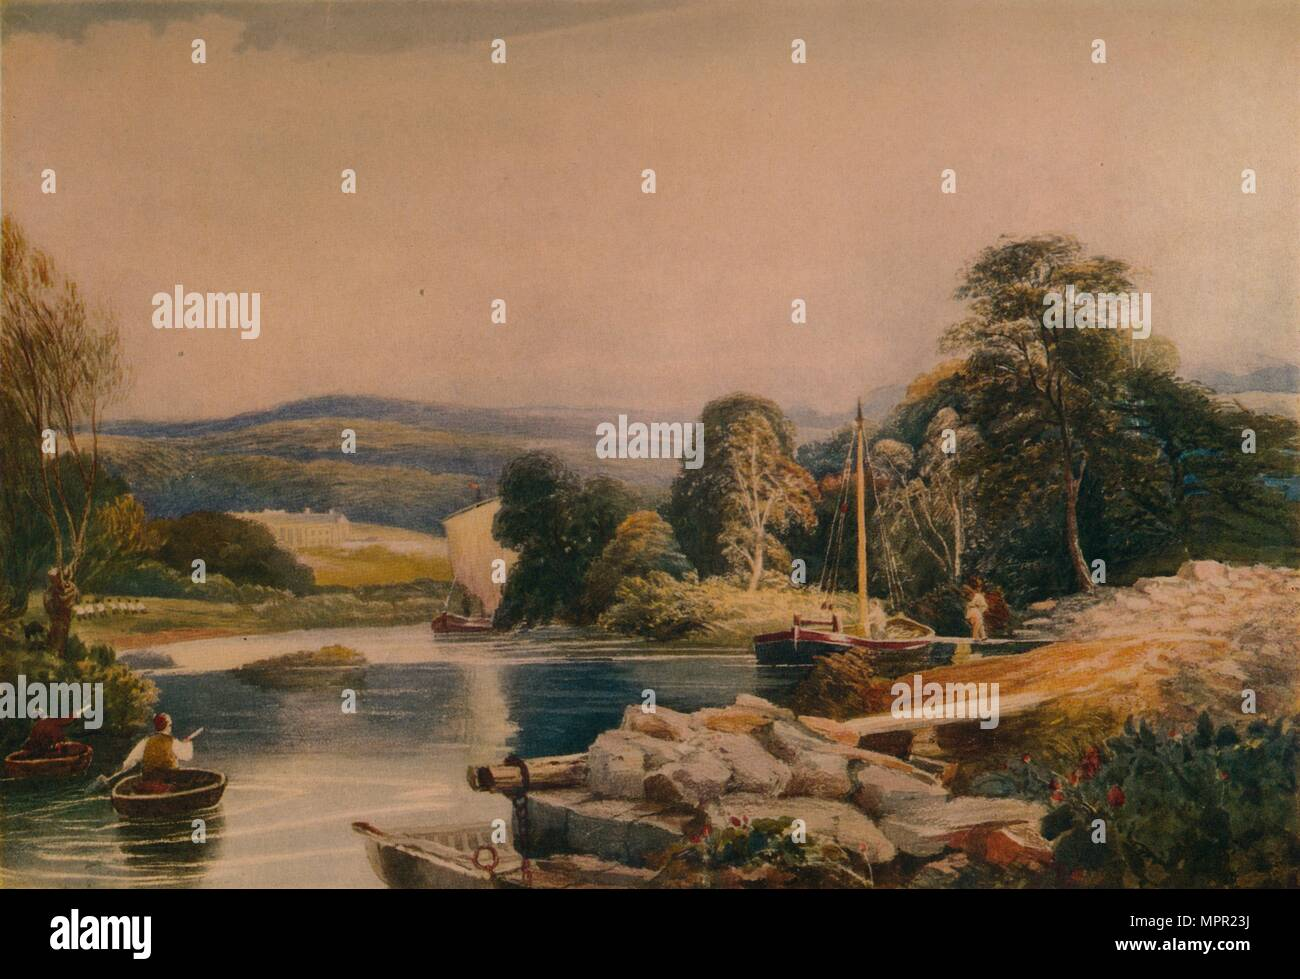 'On the Teify, Cardiganshire',19th century, (1935). Artist: Peter de Wint. - Stock Image